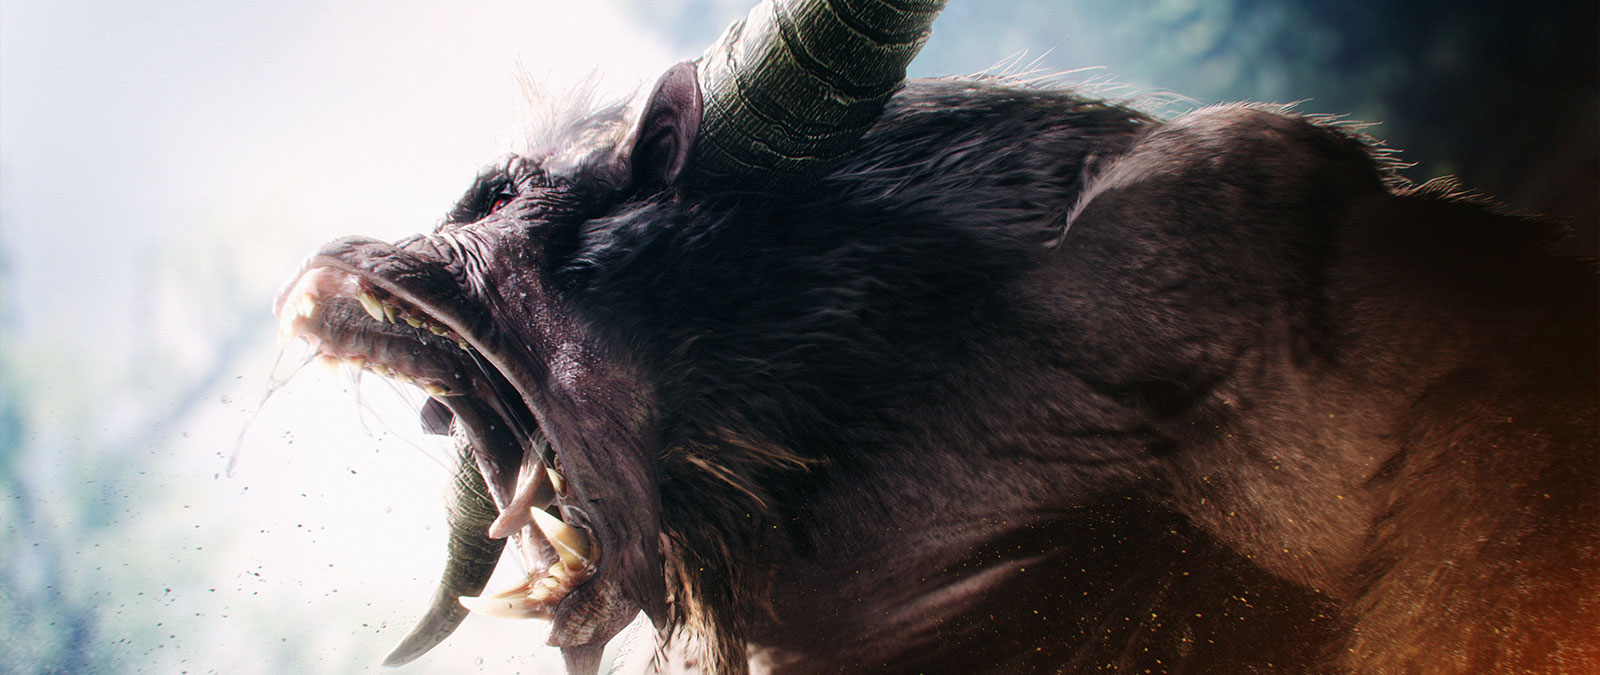 Rajang monster screams with teeth bared and spit flying